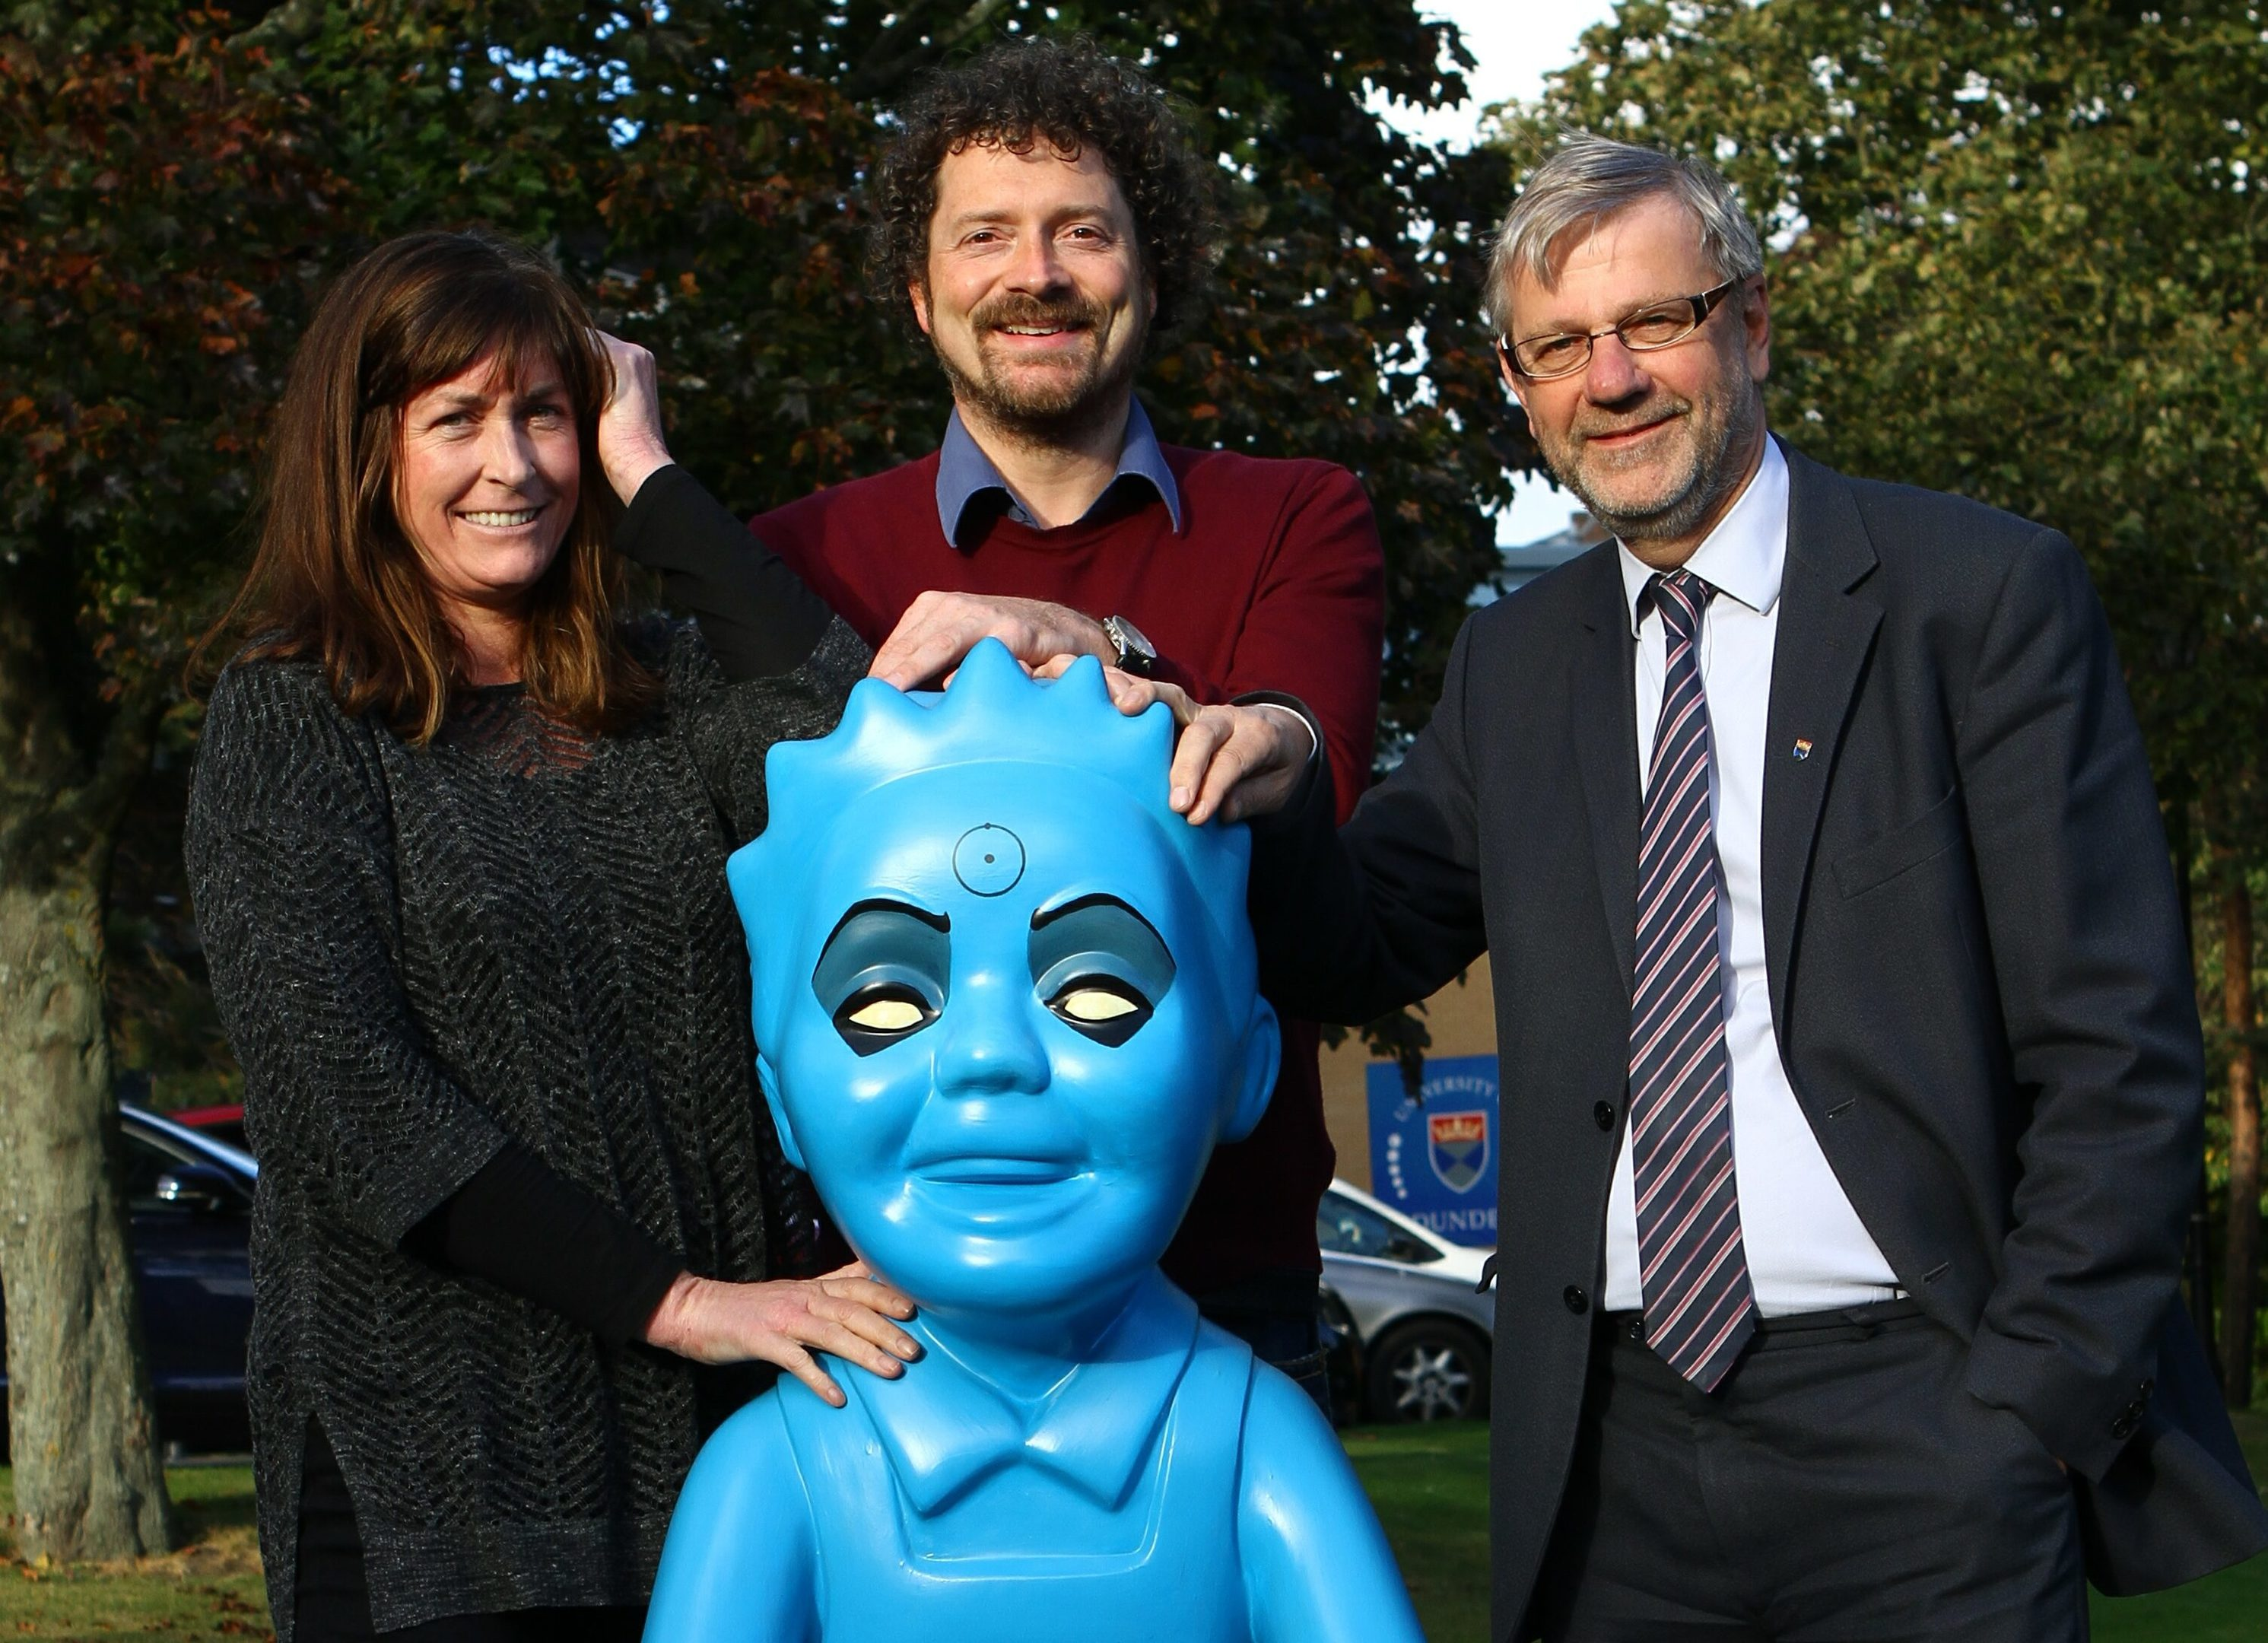 Chris van der Kuyl and wife Heather pose with Dr Manhattan Wullie and Prof Sir Pete Downes